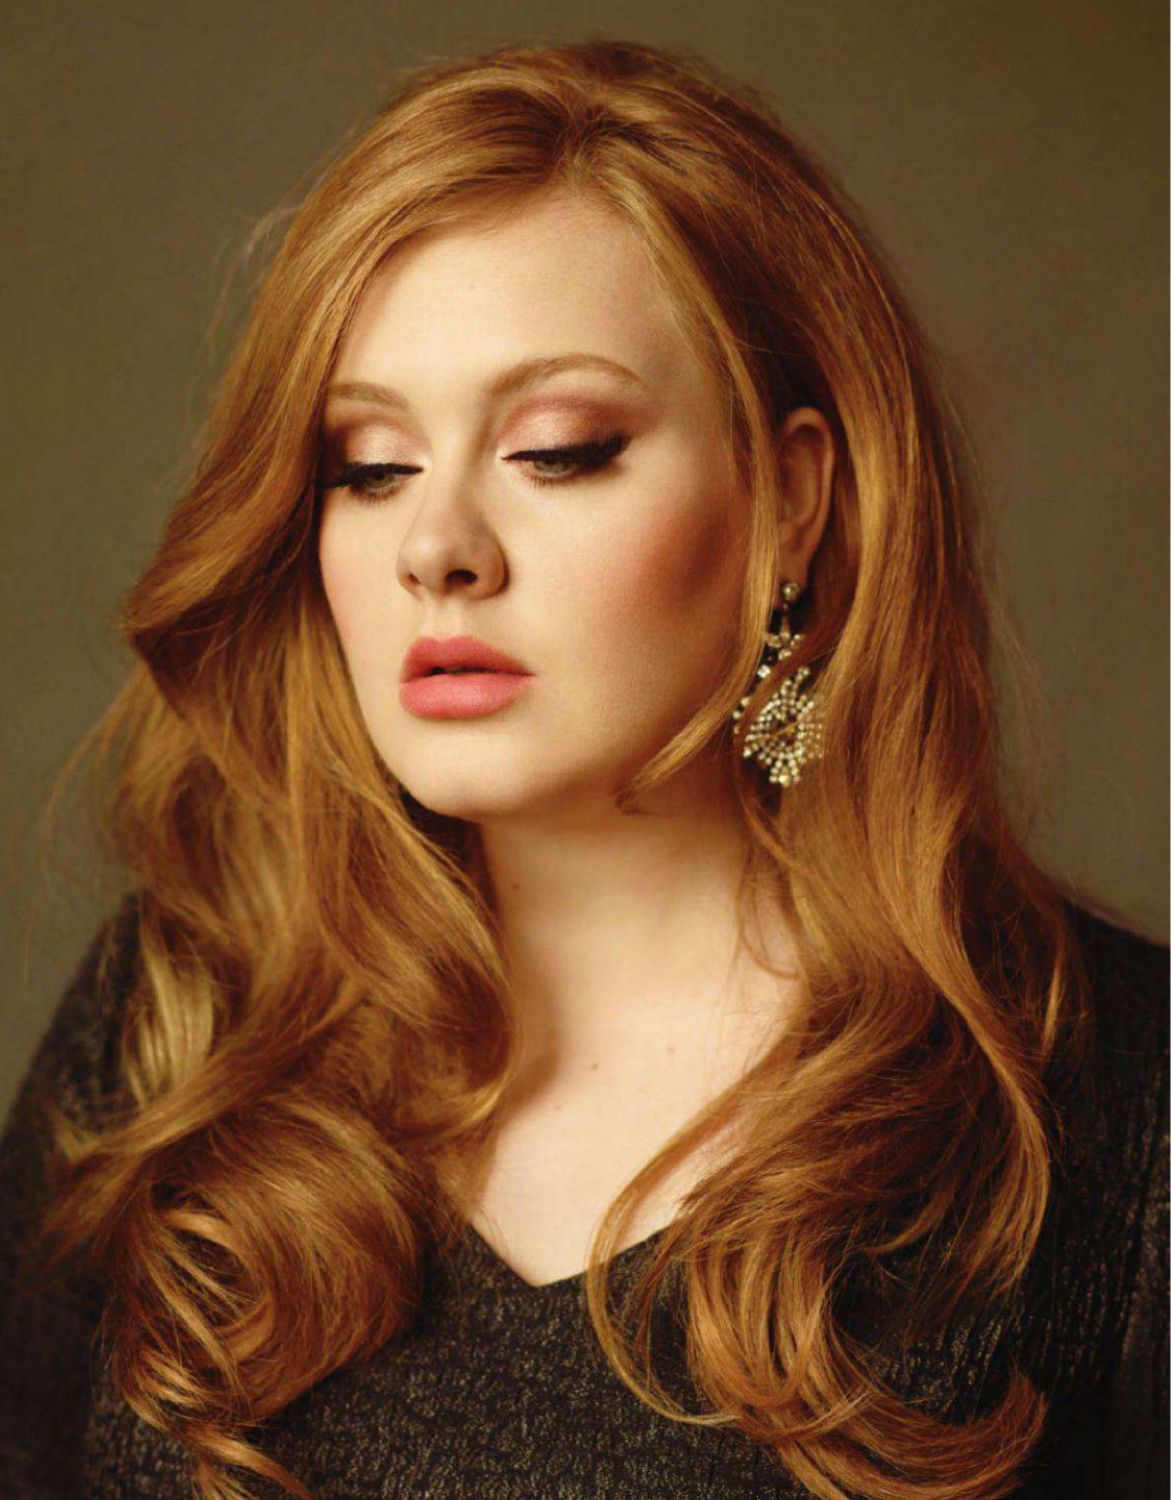 Model And Celebrity News: Adele's new boyfriend, Simon